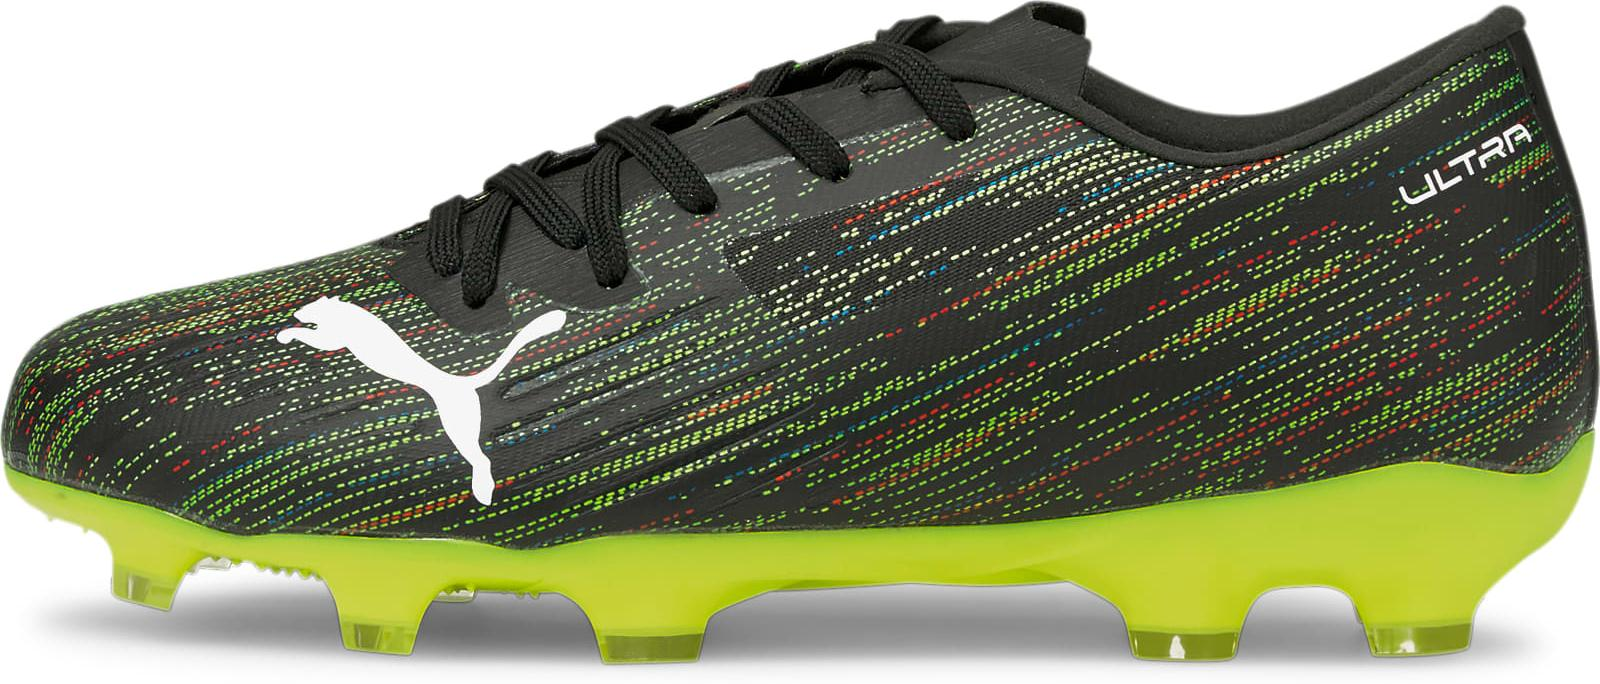 Football shoes Puma ULTRA 2.2 FG/AG Jr